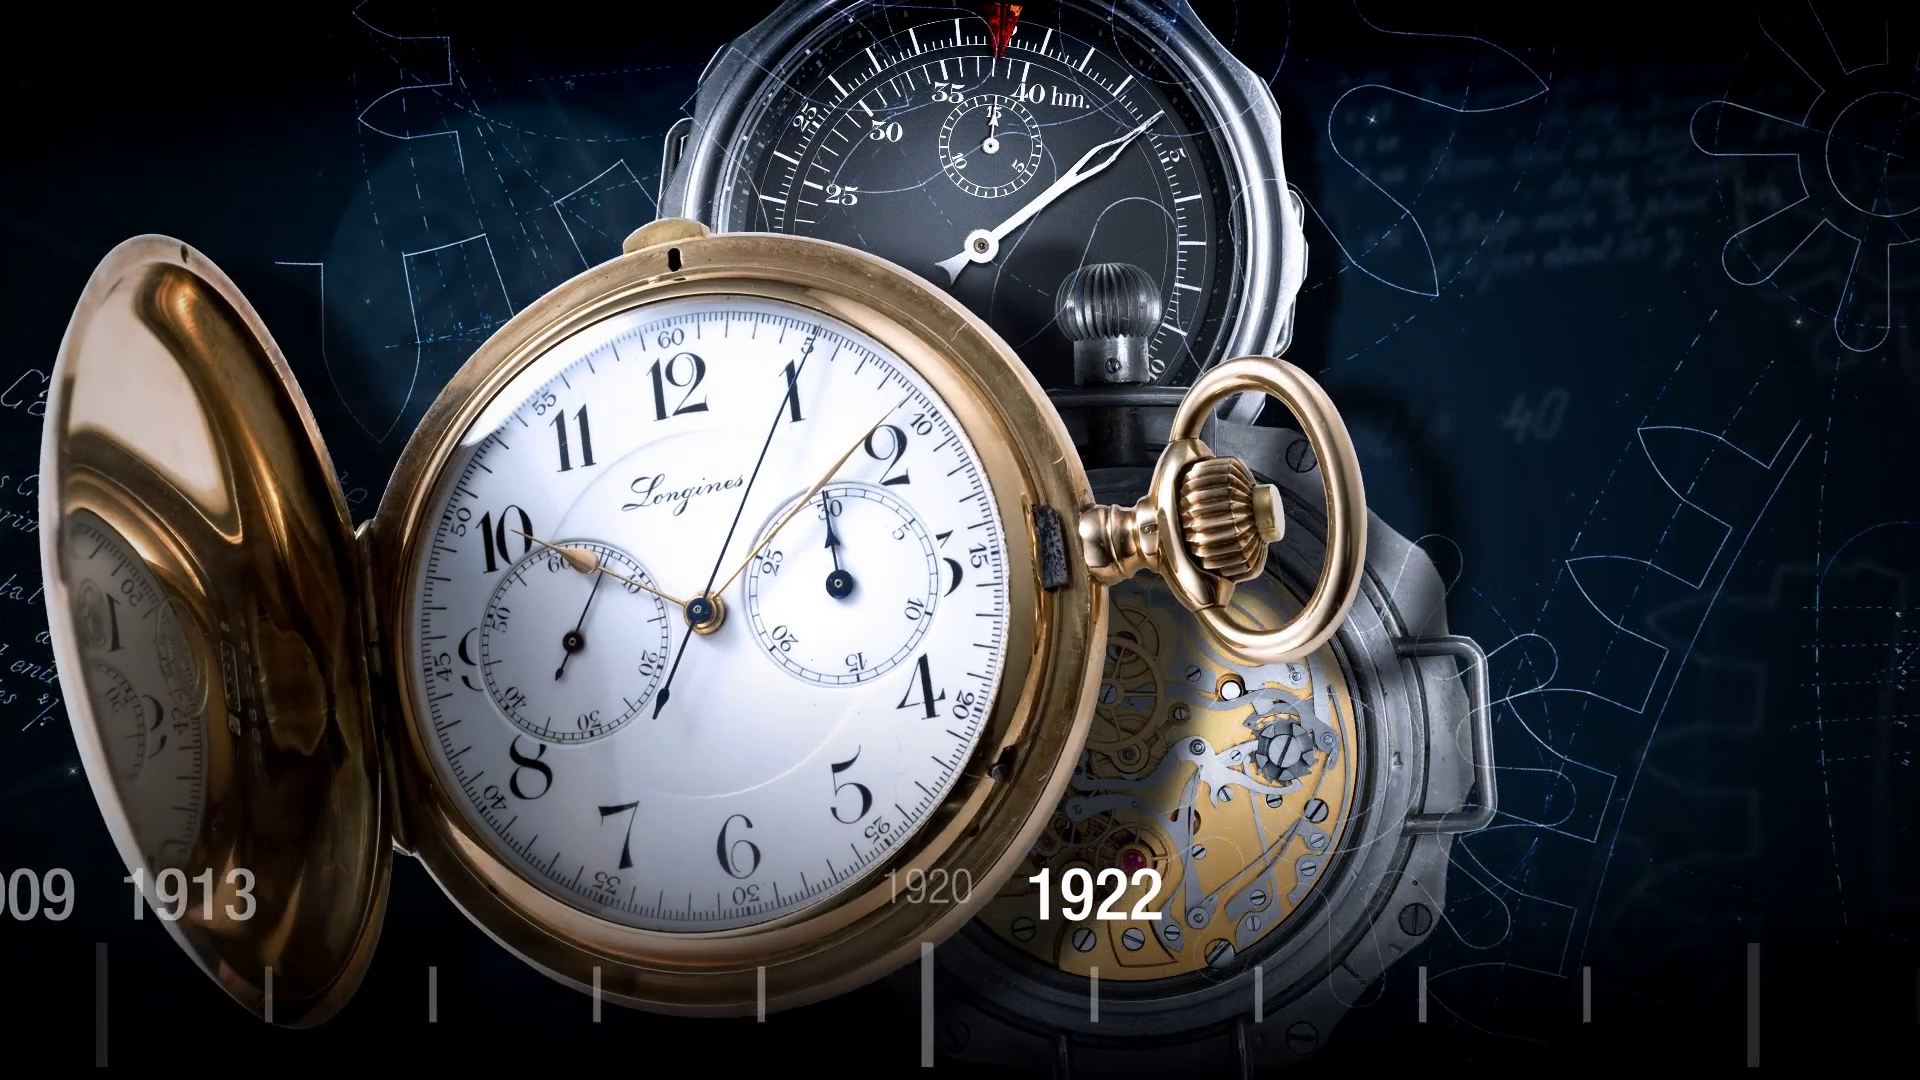 3DVISION NYVALIS 2016 LONGINES Chronograph Tradition 02